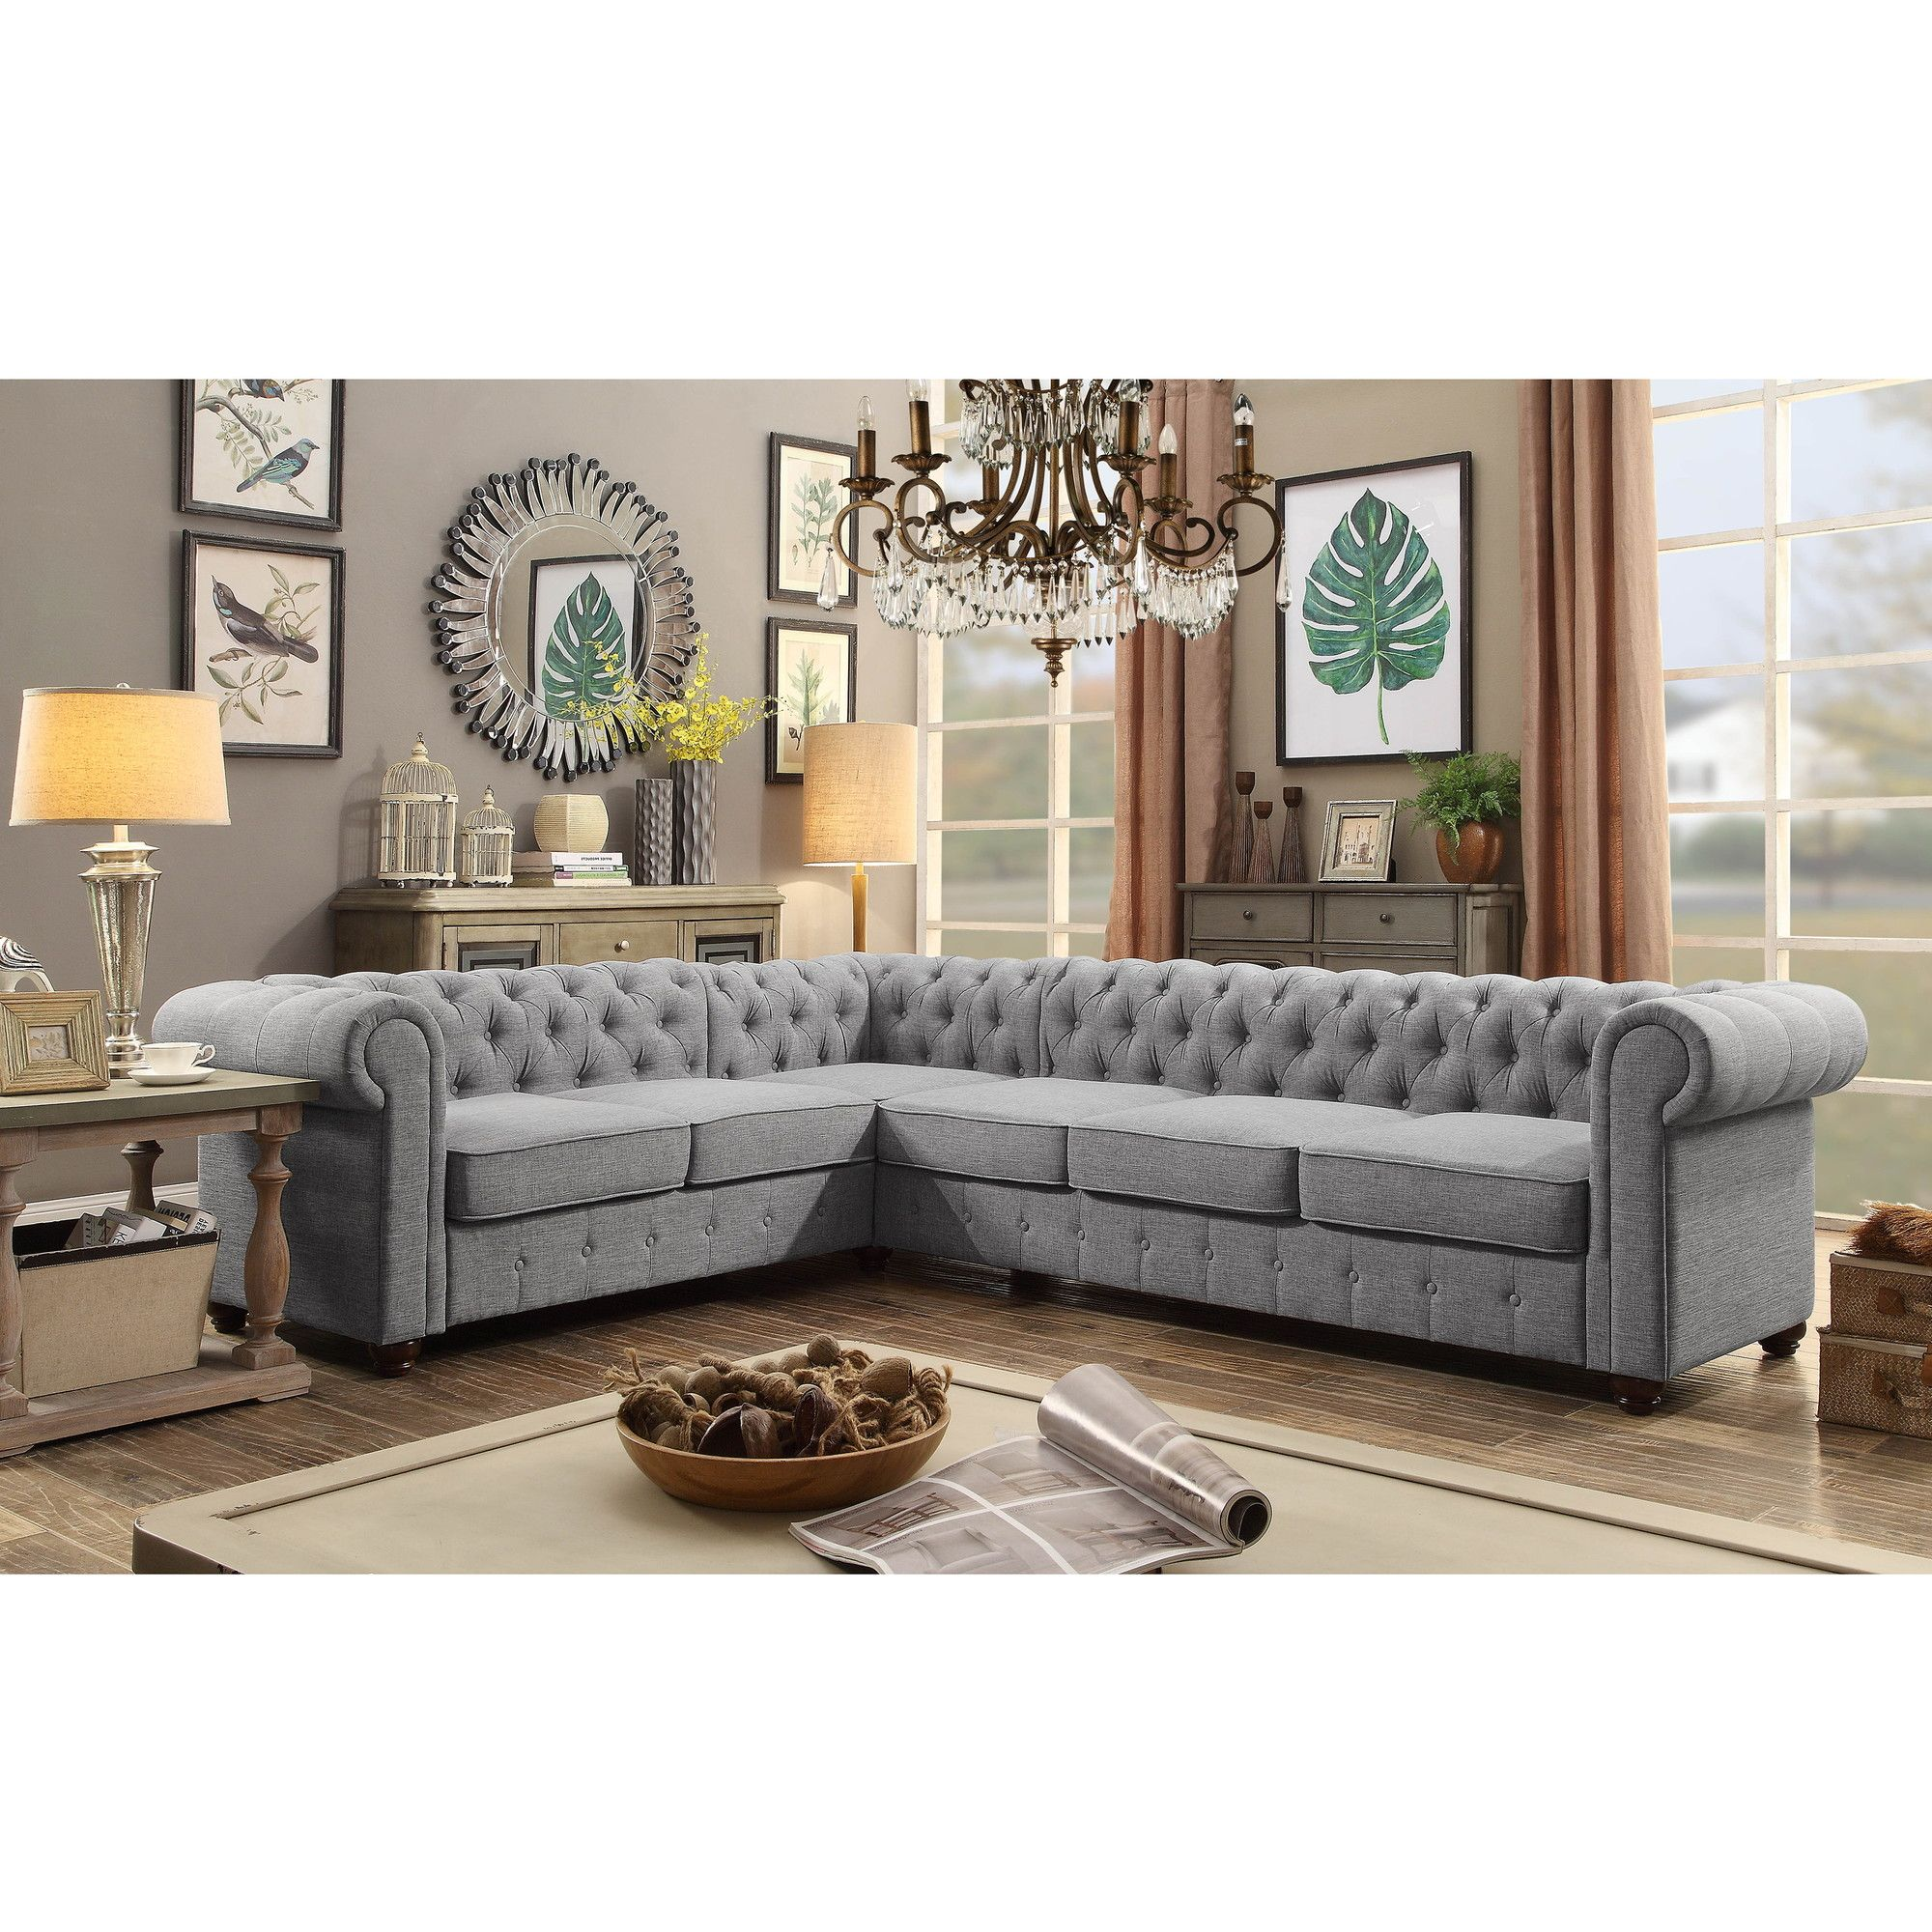 Shop Wayfair For Sectional Sofas To Match Every Style And Budget Enjoy Free Shipping On Most Stuff Ev Sectional Sofa Couch Sectional Sofa Furniture